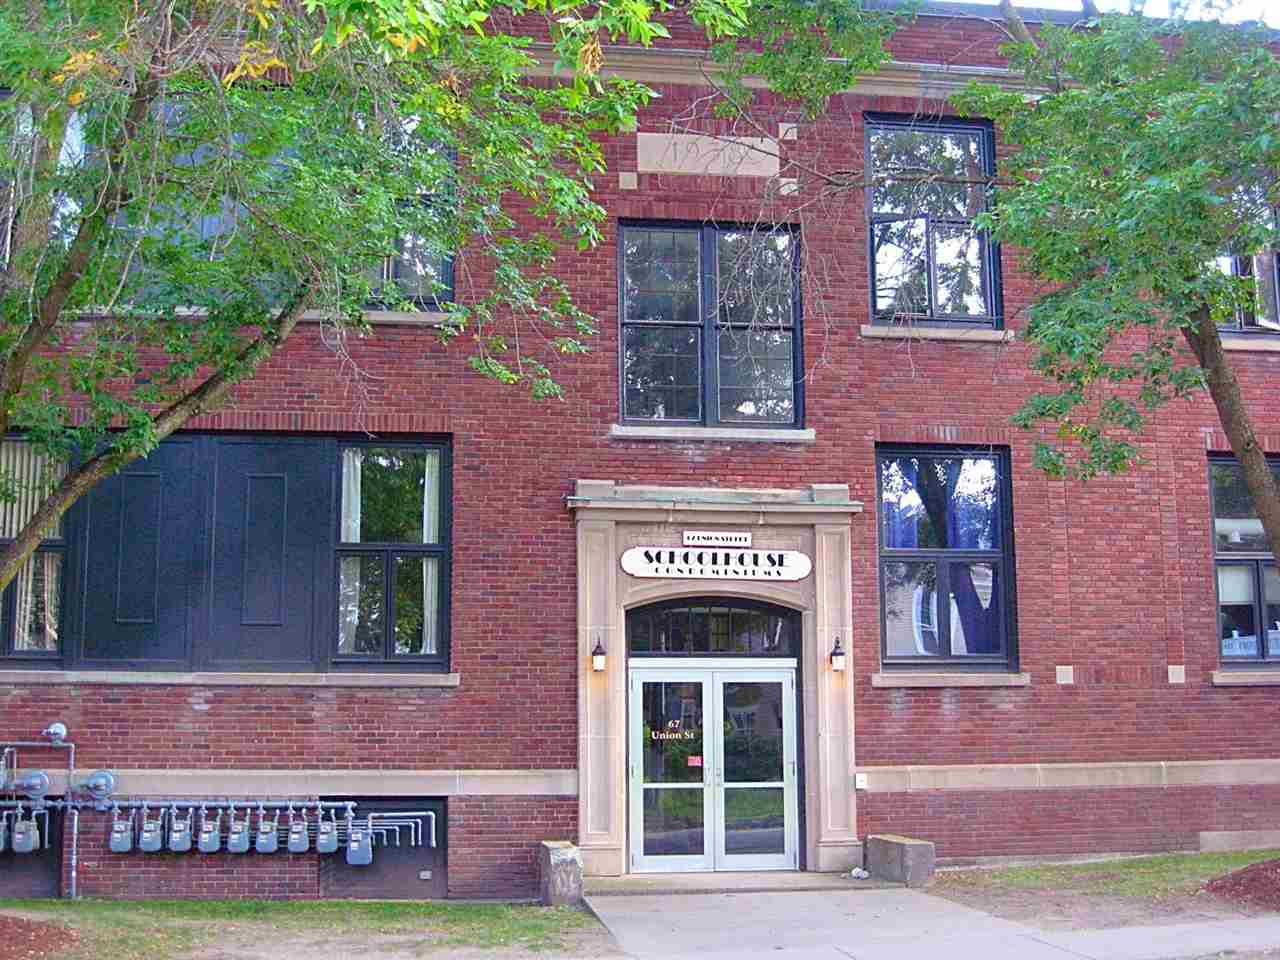 Commercial office condominium located in a former elementary school. Built in 1938, this historic school was converted into condominiums in 1990. Call for an easy showing!